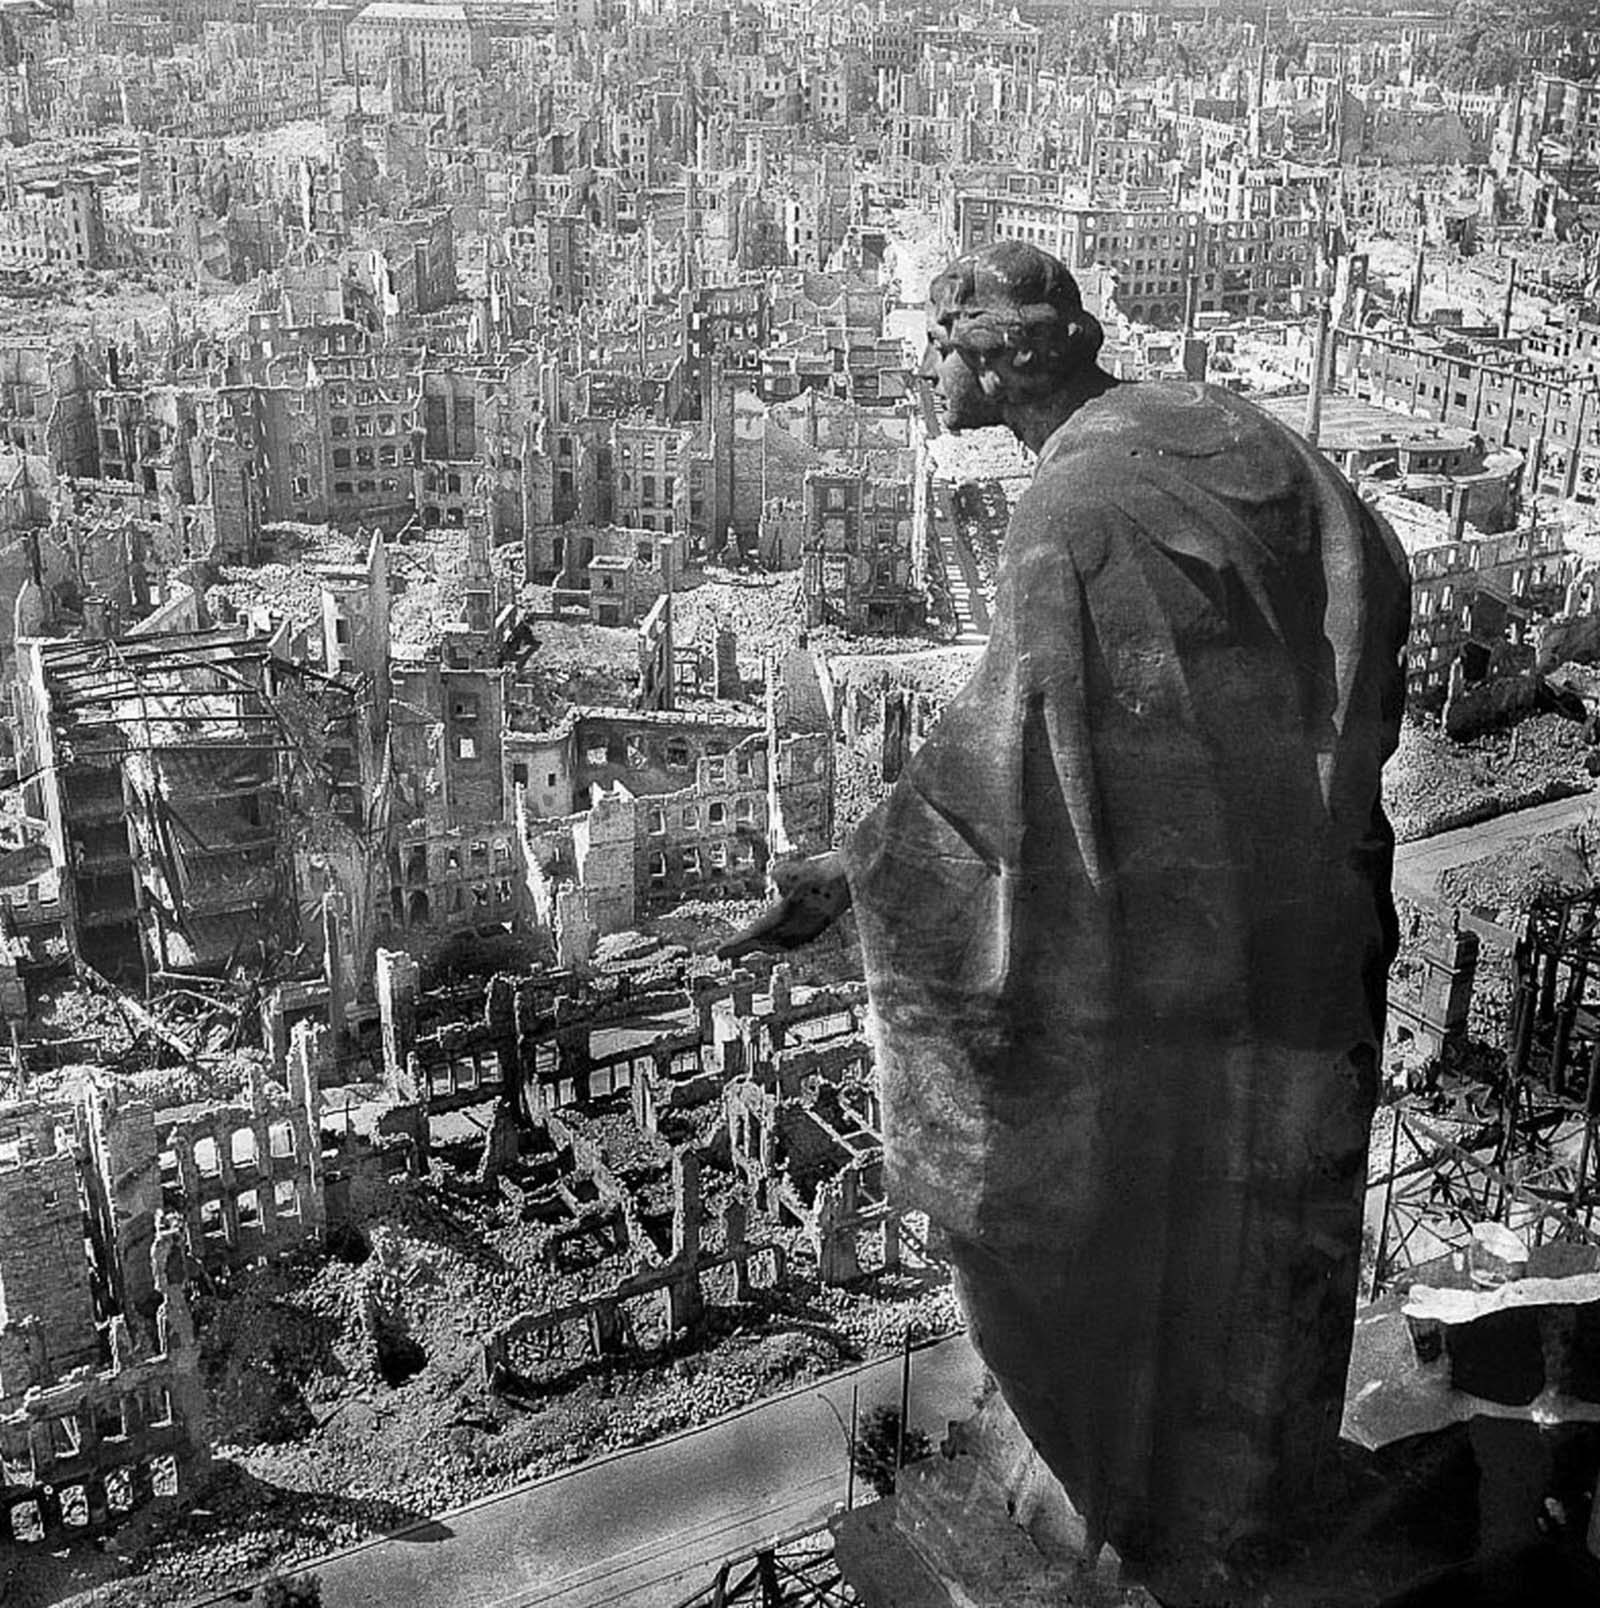 The destroyed city as seen from city hall. 1945.